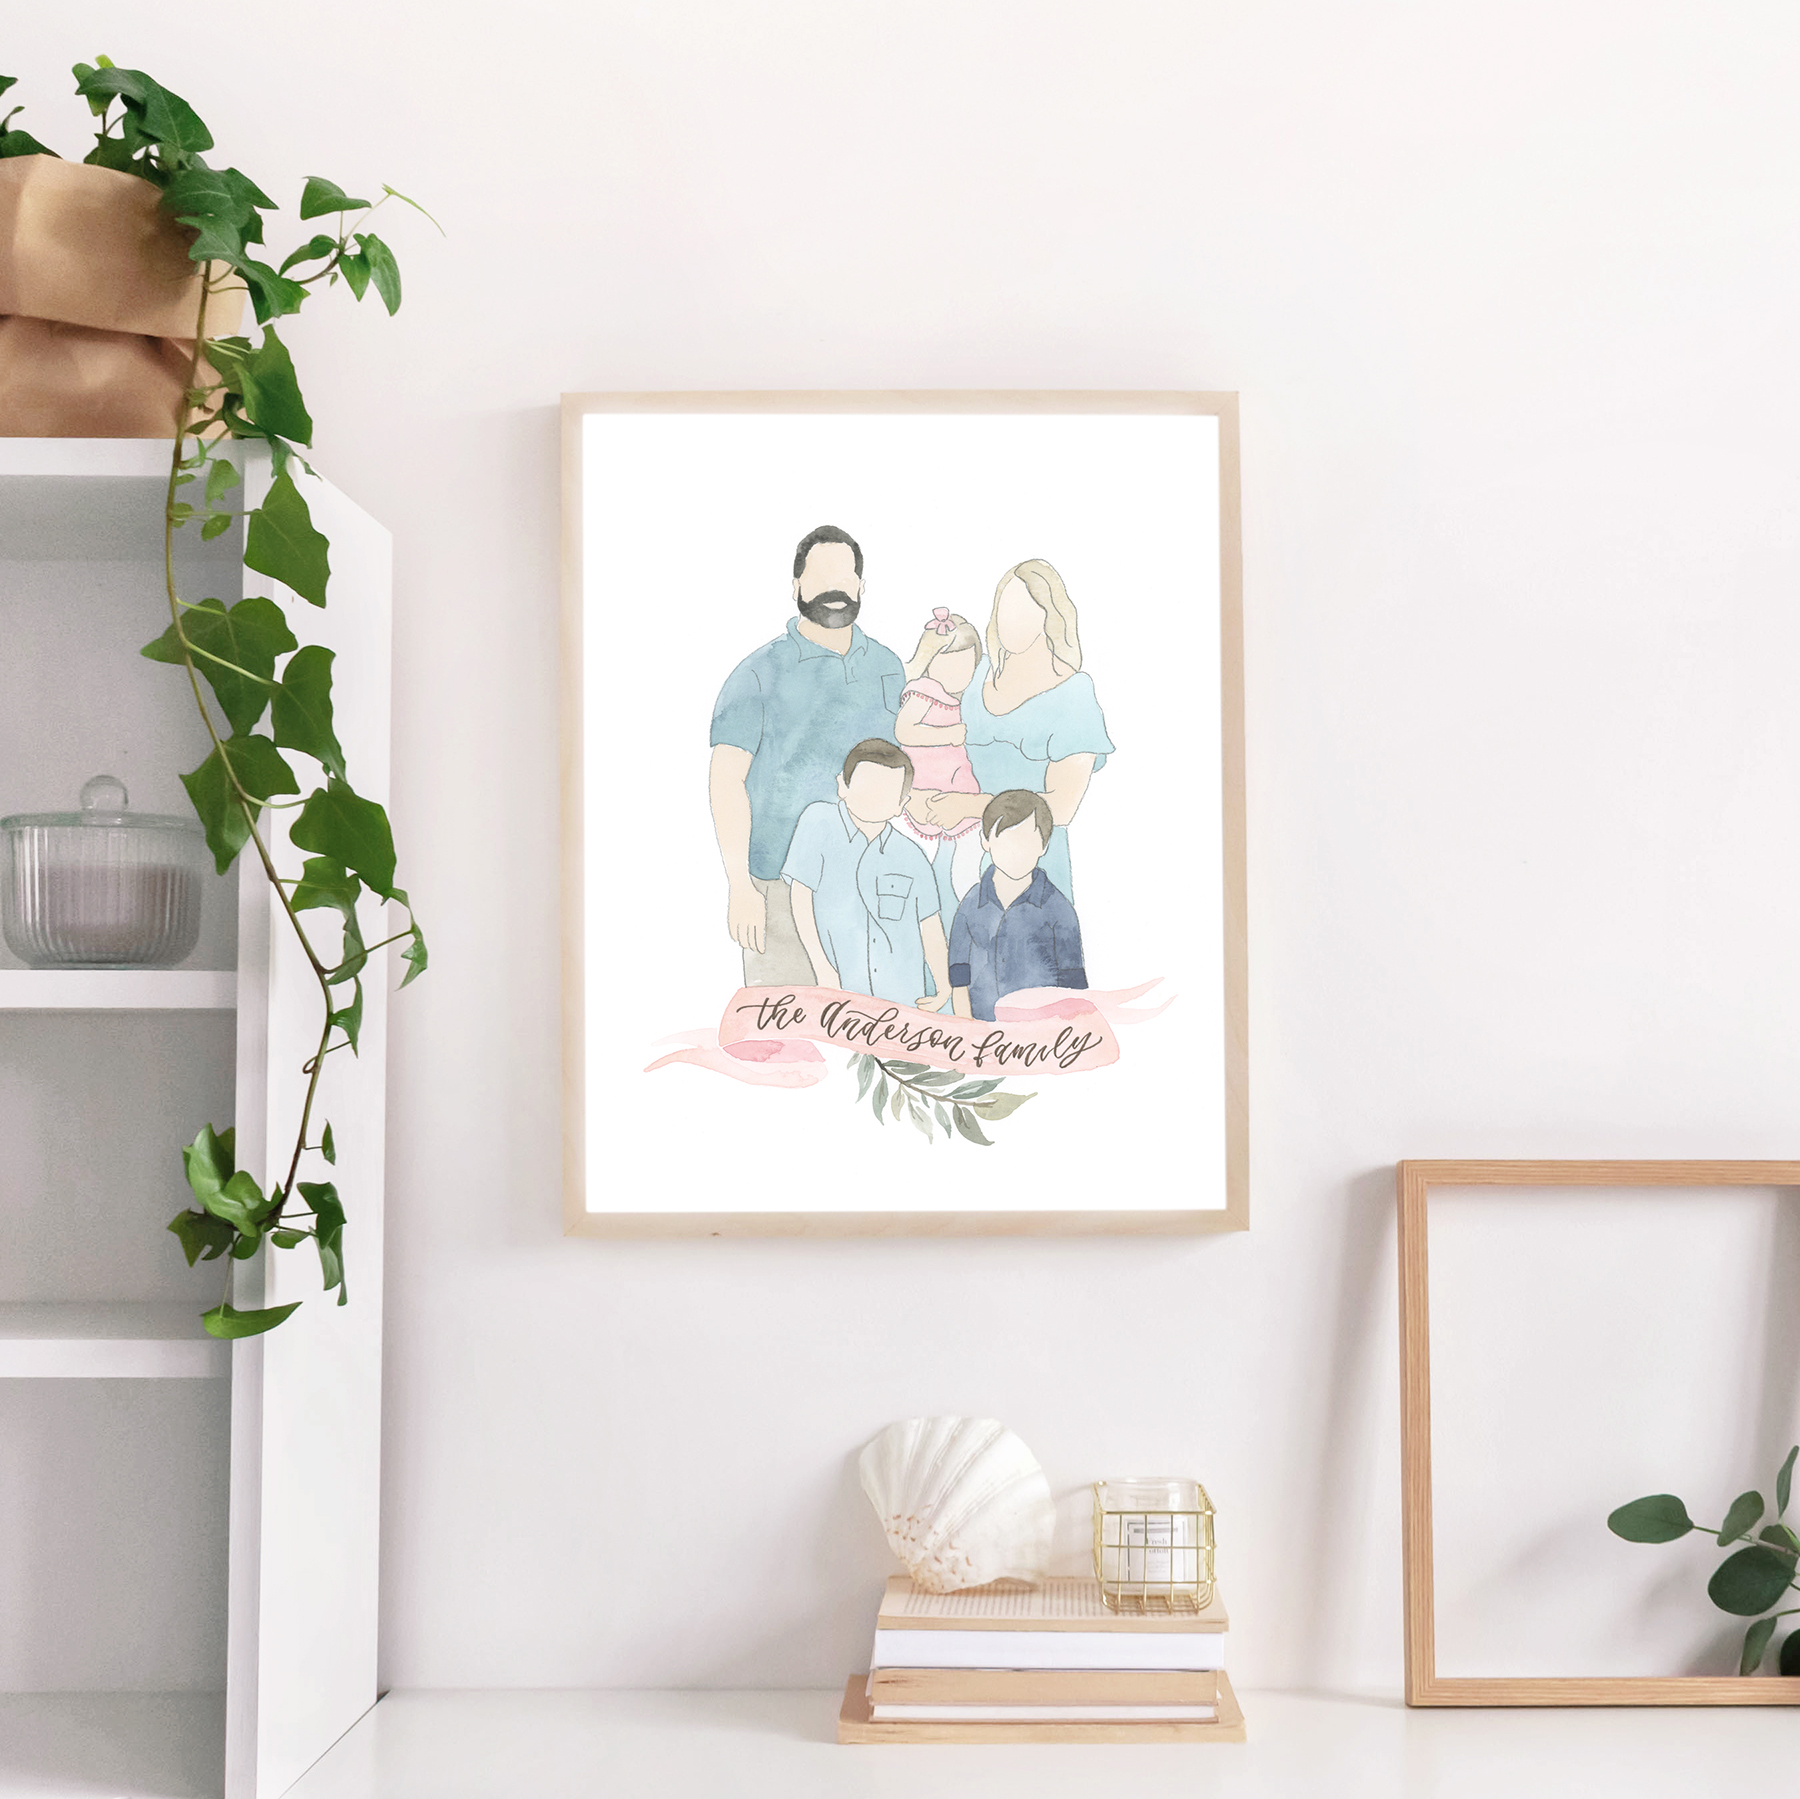 Sam Allen Creates – Watercolor Faceless Family Portrait for Gallery Wall, Anderson